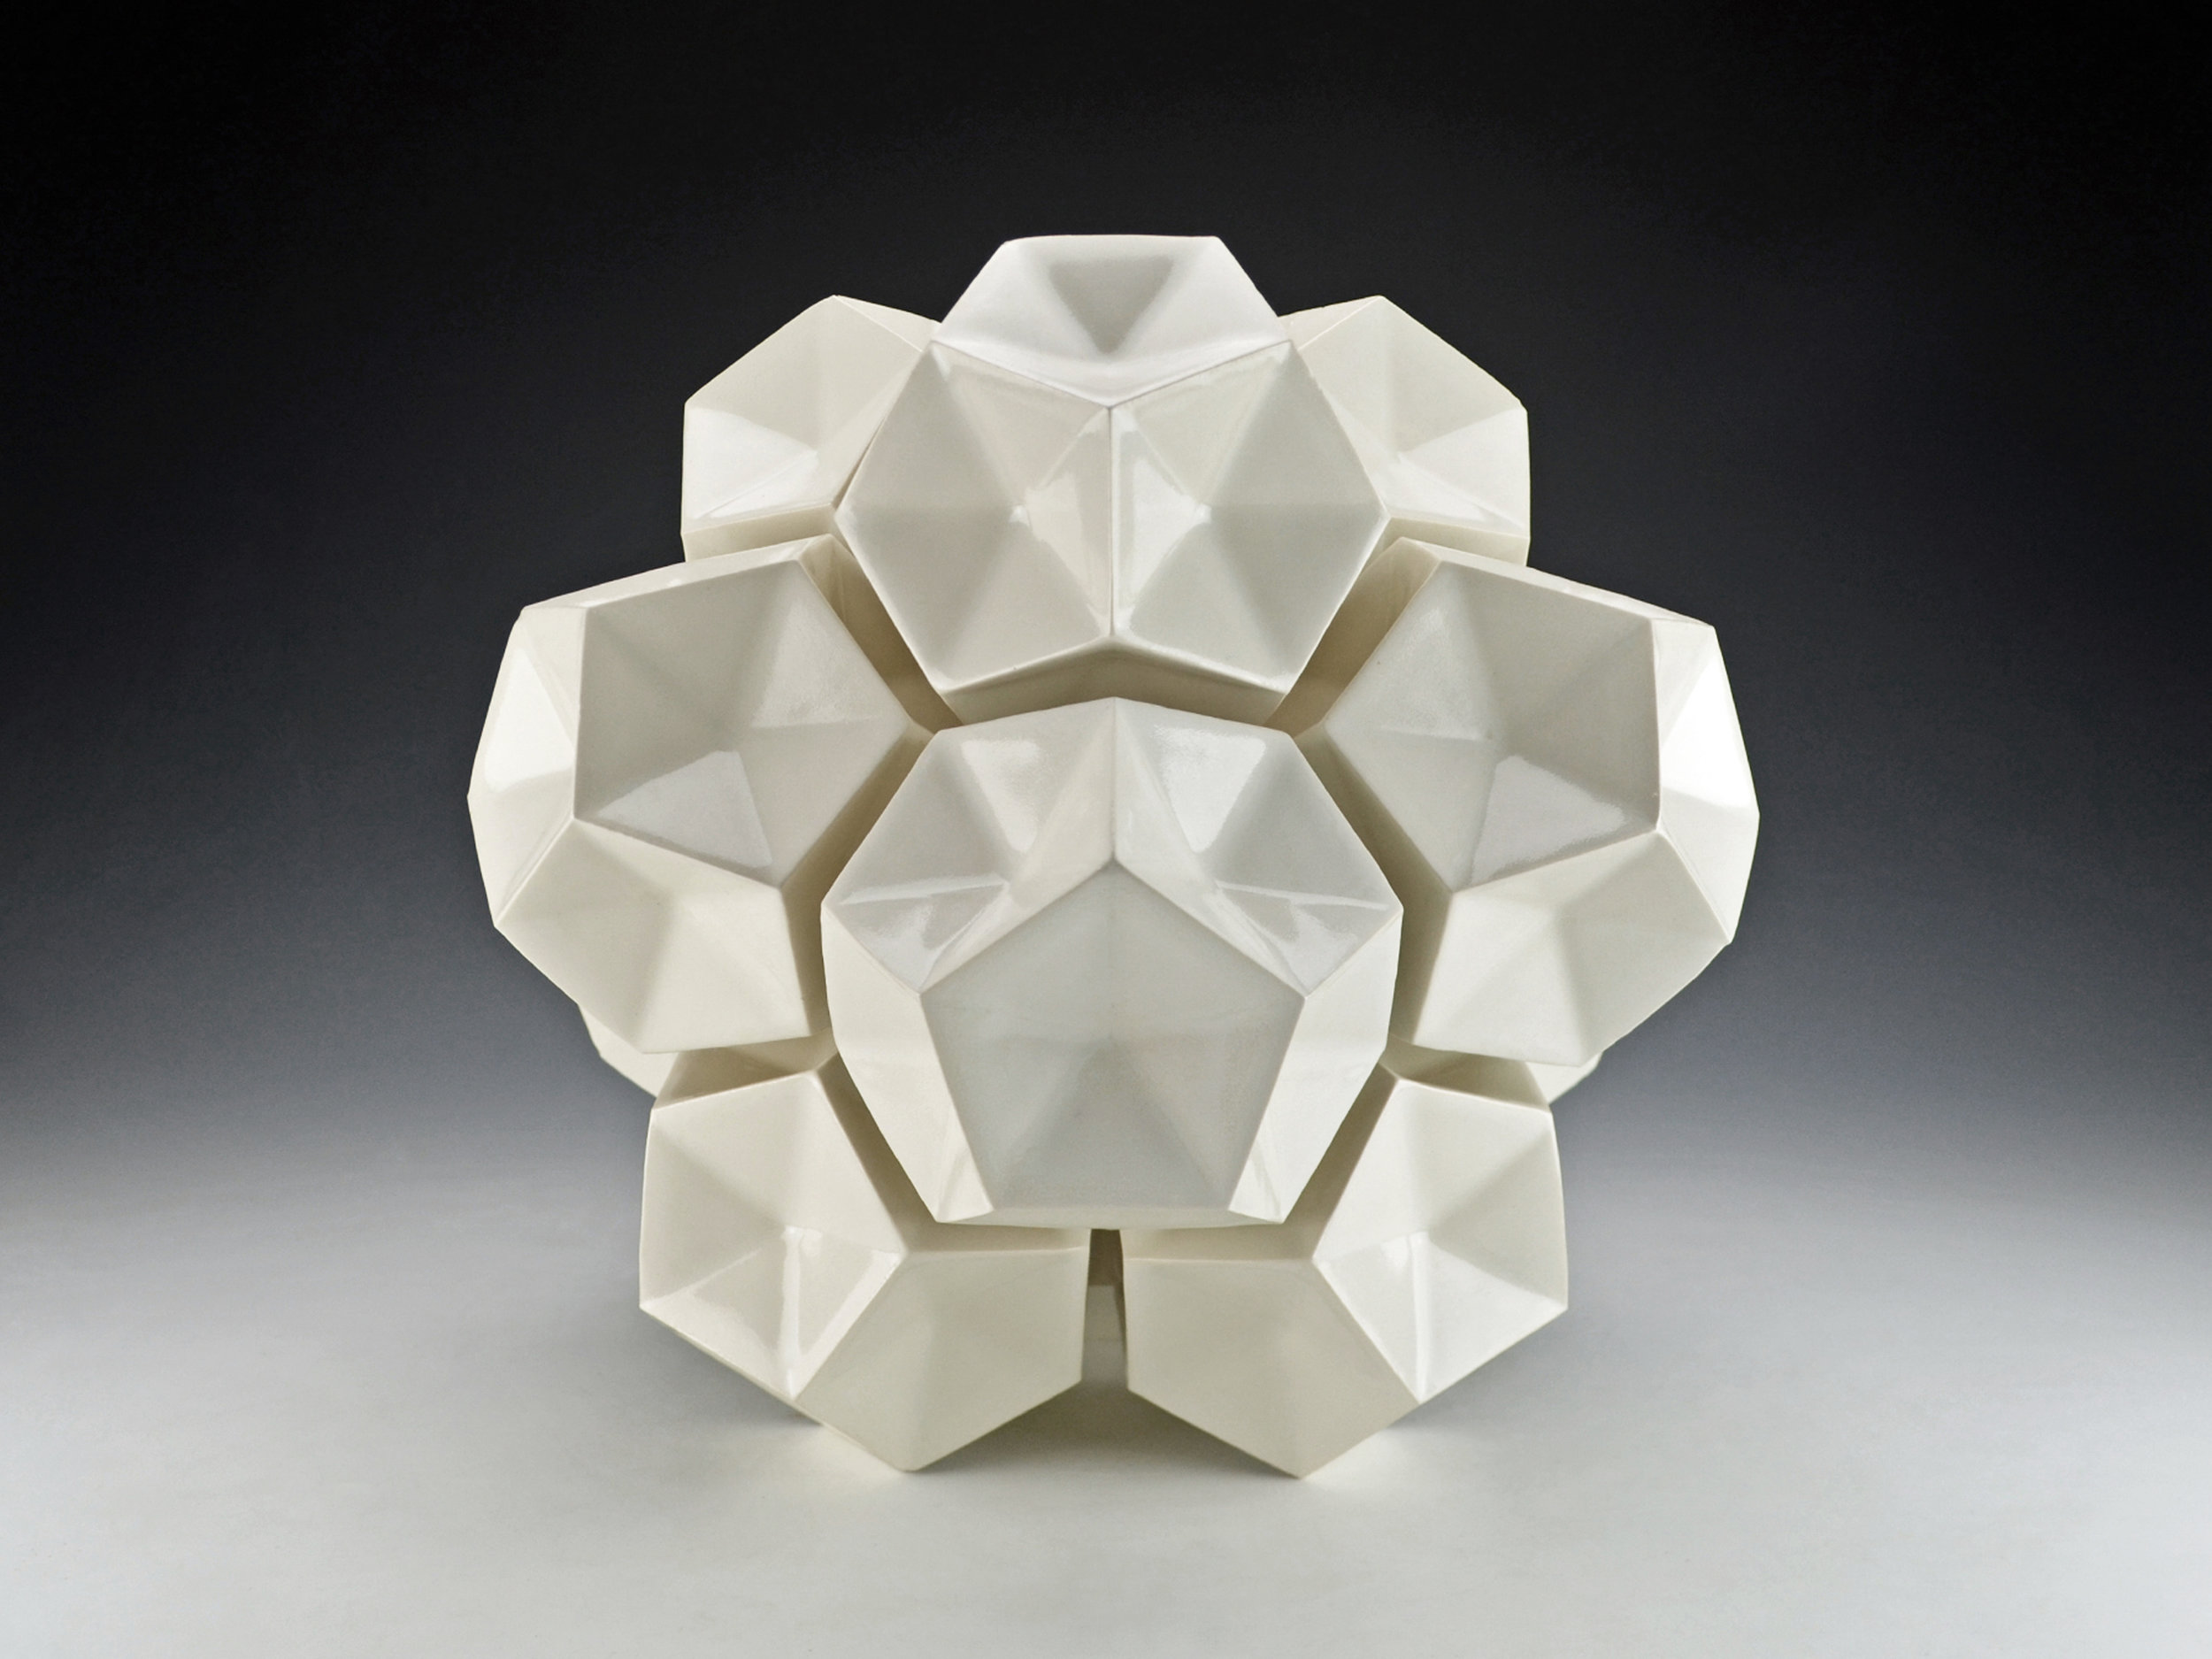 Dodecahedron Construction (White)  |  14 x 14 x 14 inches  |  Porcelain, Glaze  |  2017